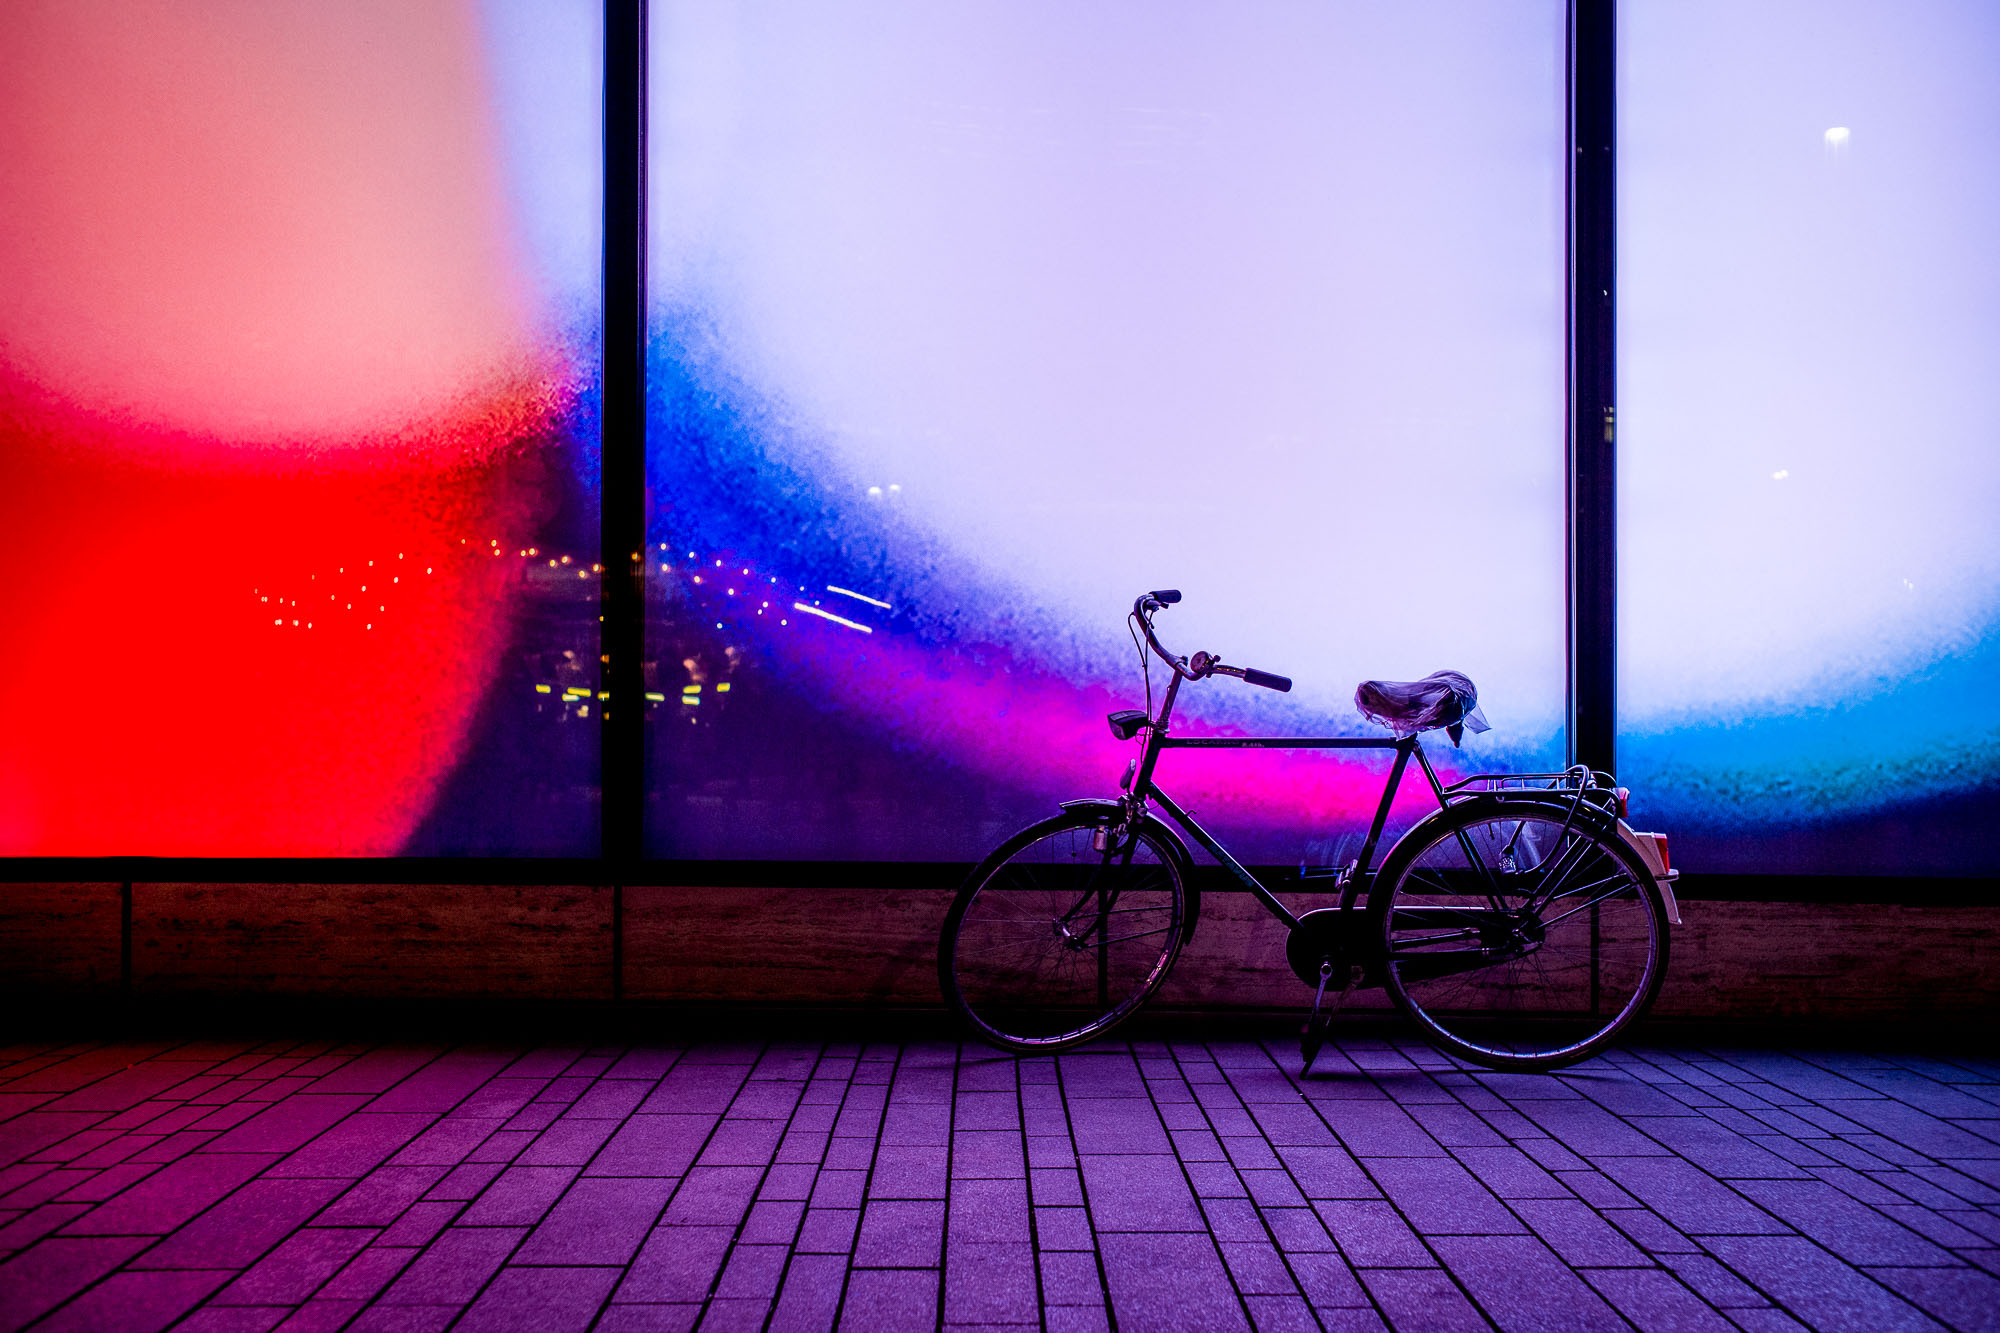 Bike in front of a colorful background